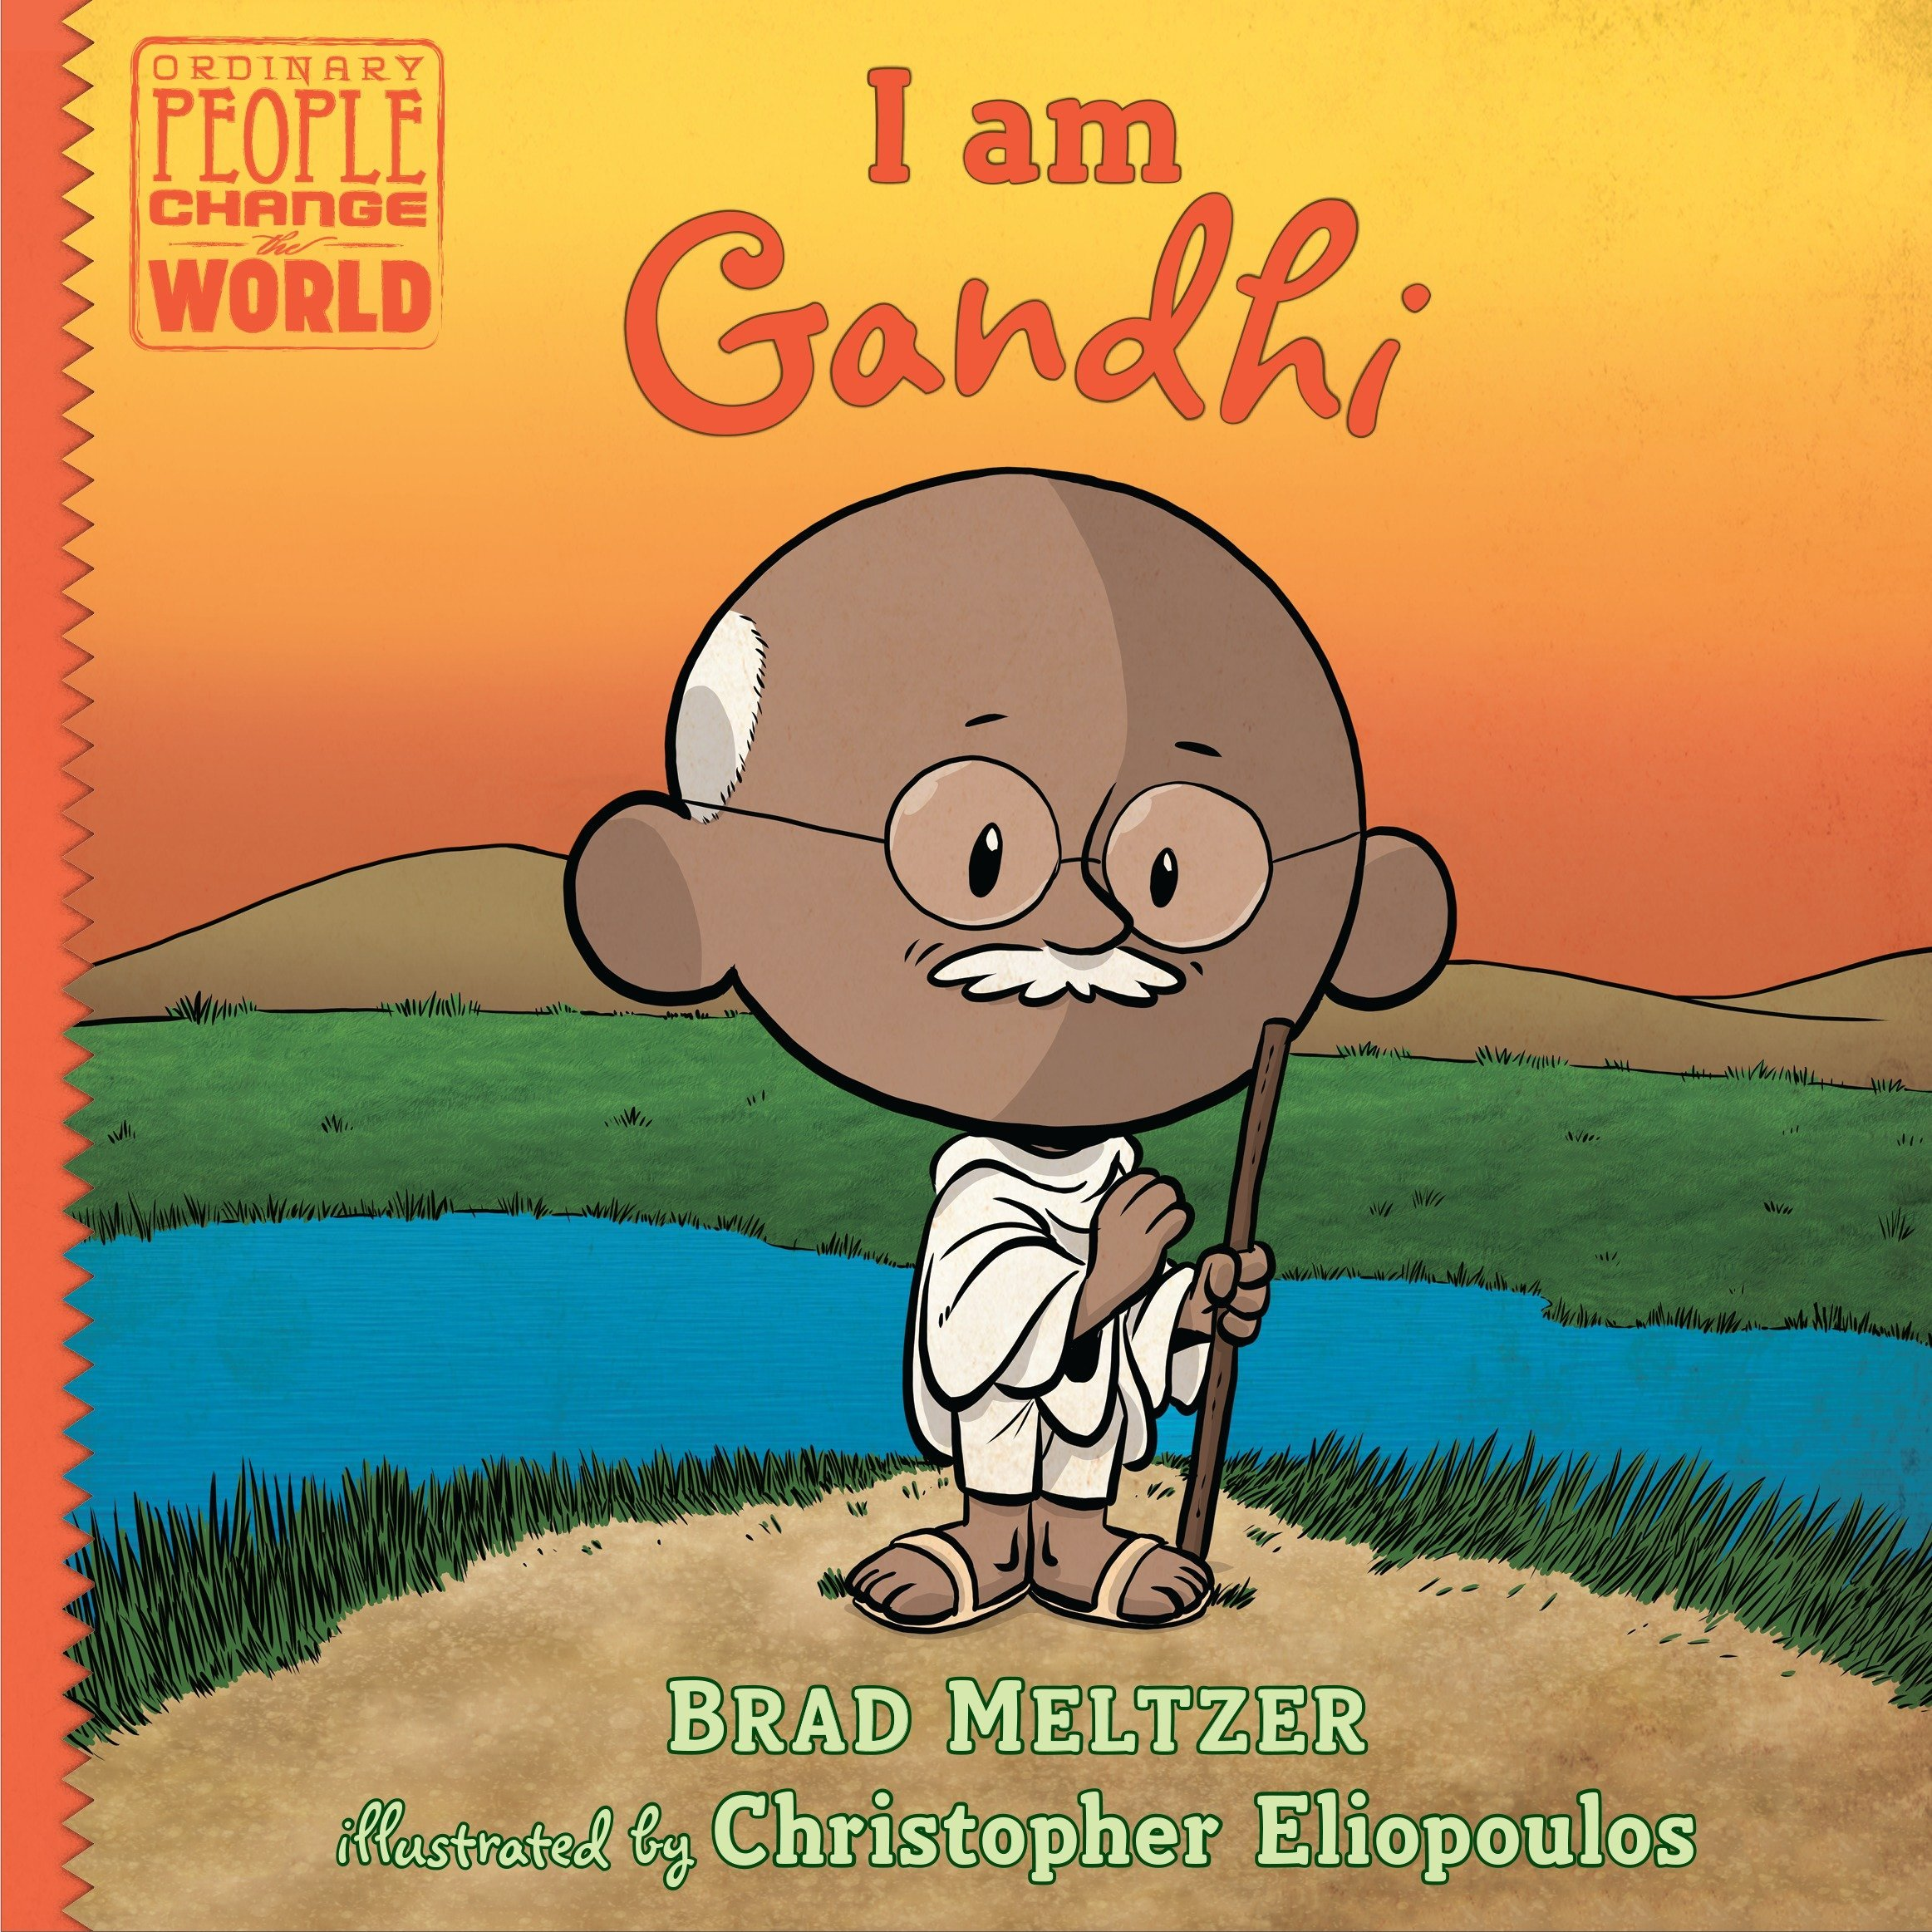 I am Gandhi (Ordinary People Change the World) by Dial Books (Image #5)